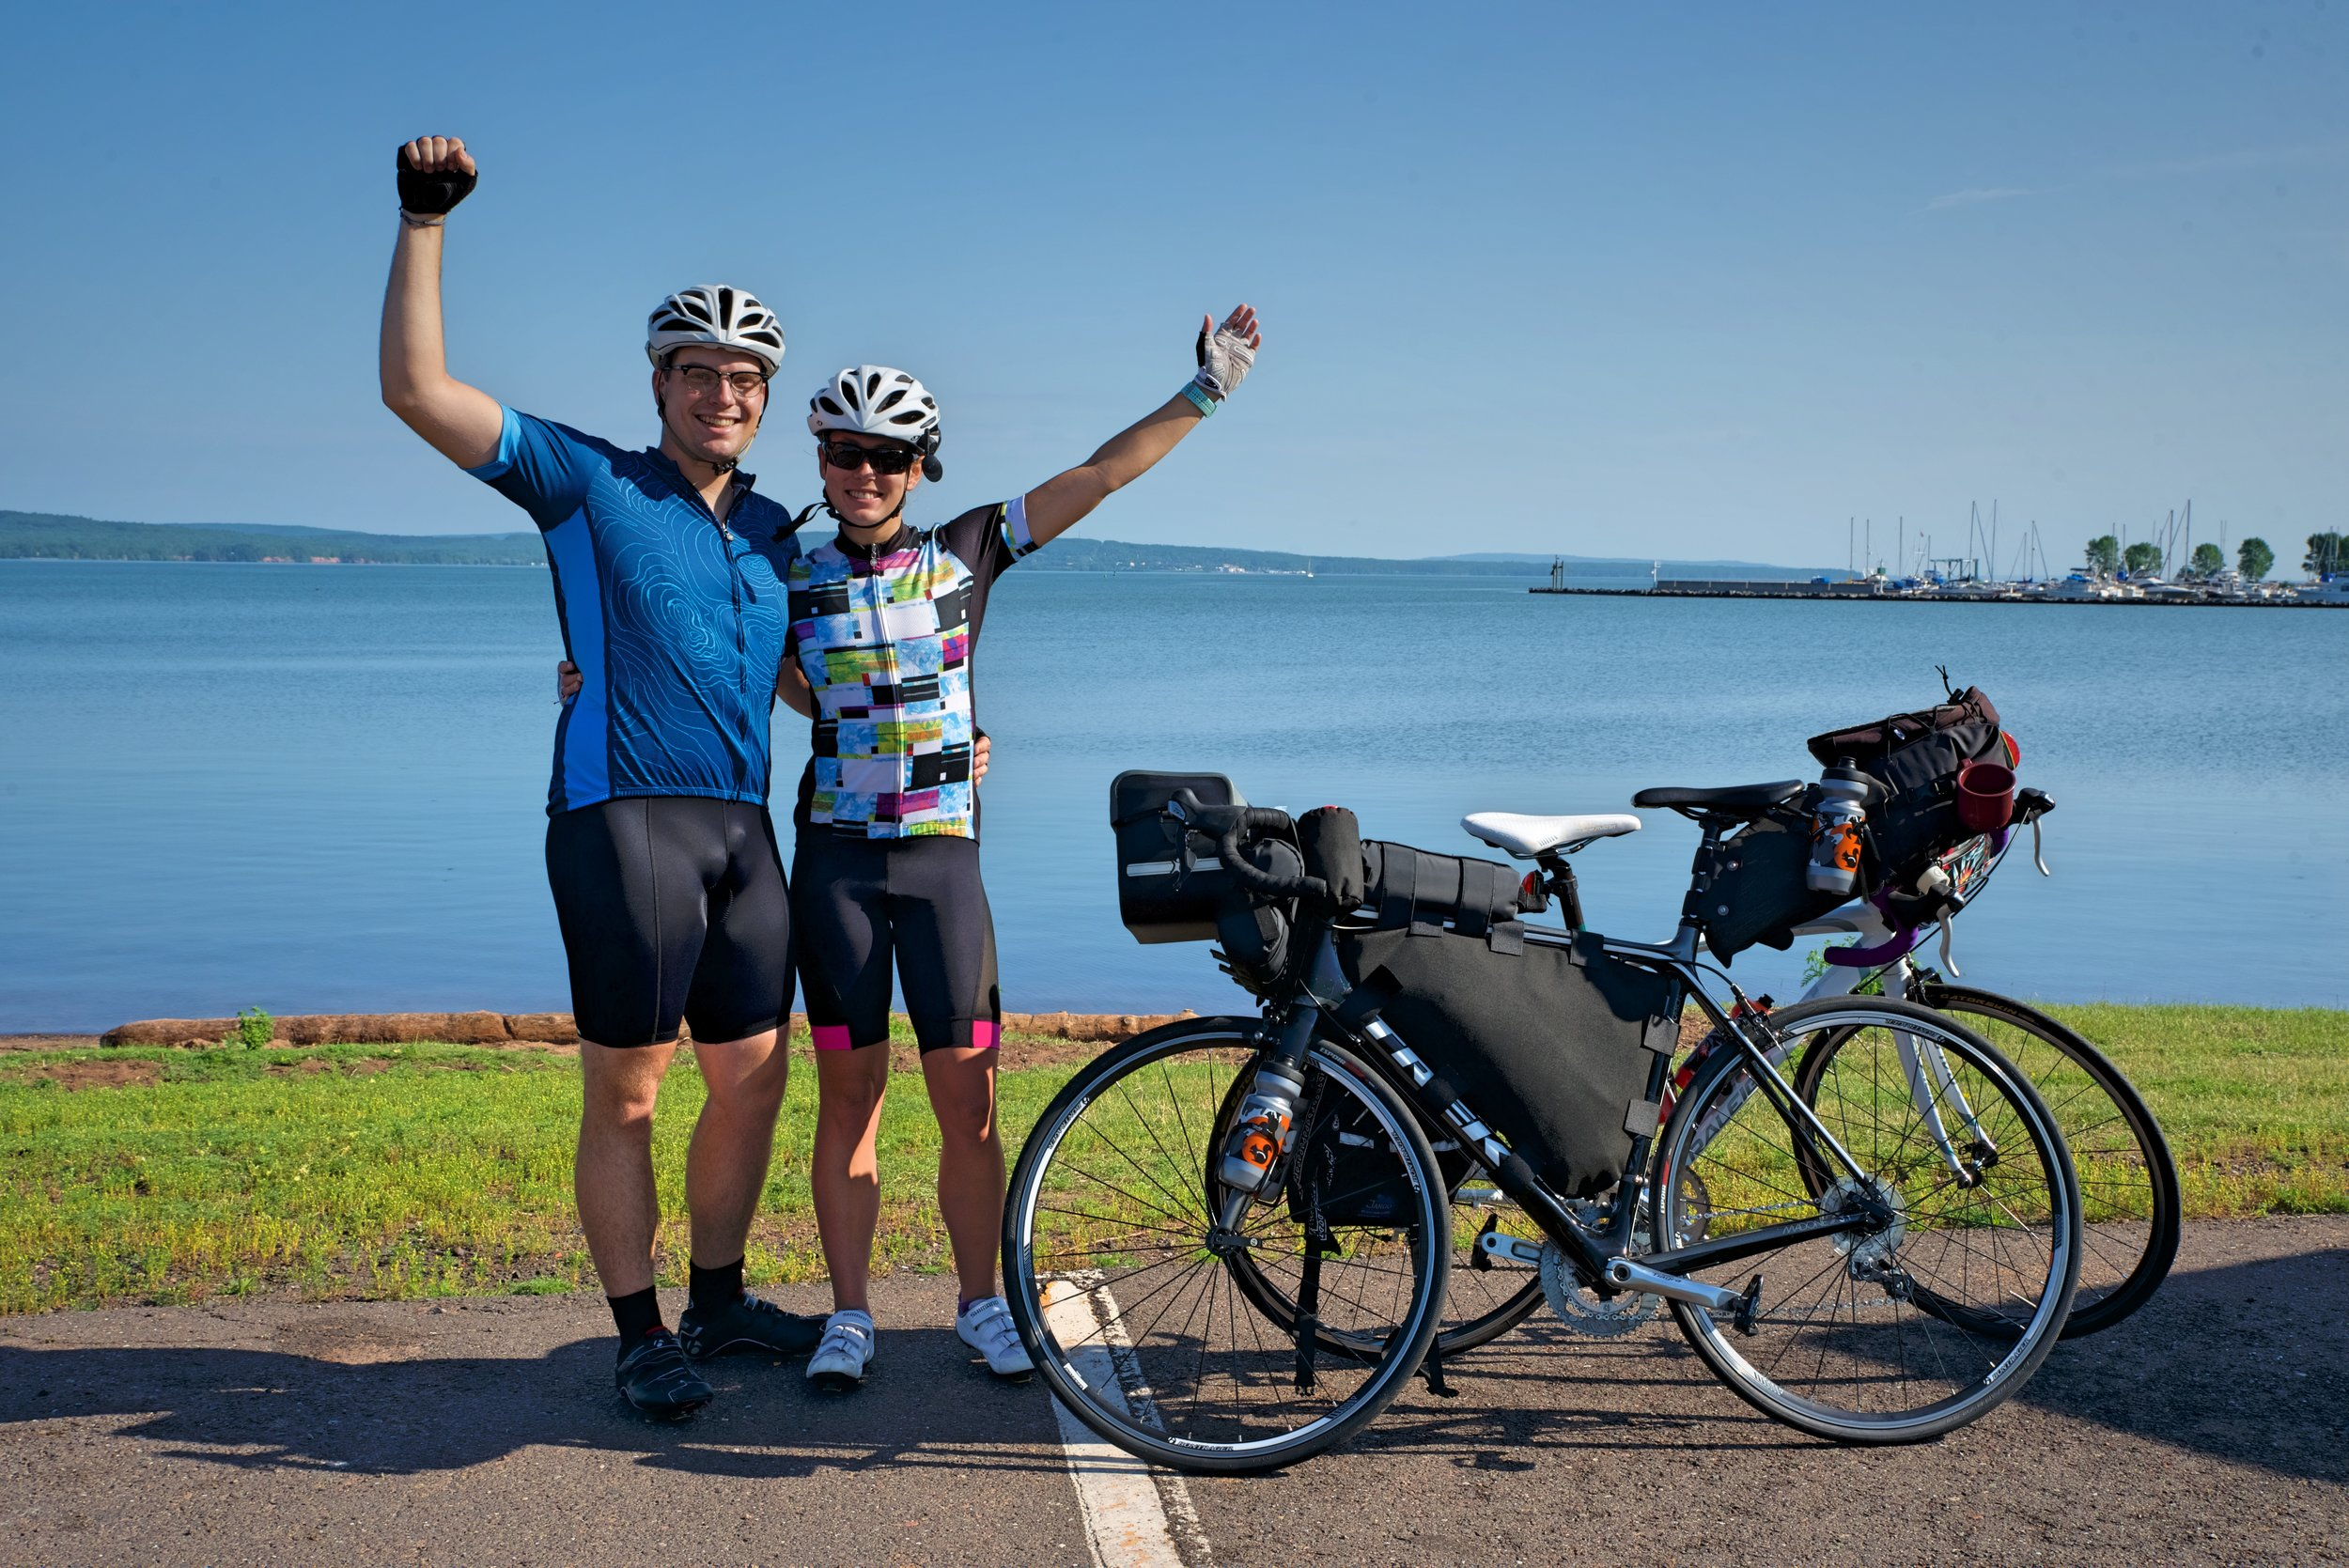 A mix of excitement and trepidation as we started our Lake Superior bike tour on the shores to the Chequamegon Bay in Ashland, WI.